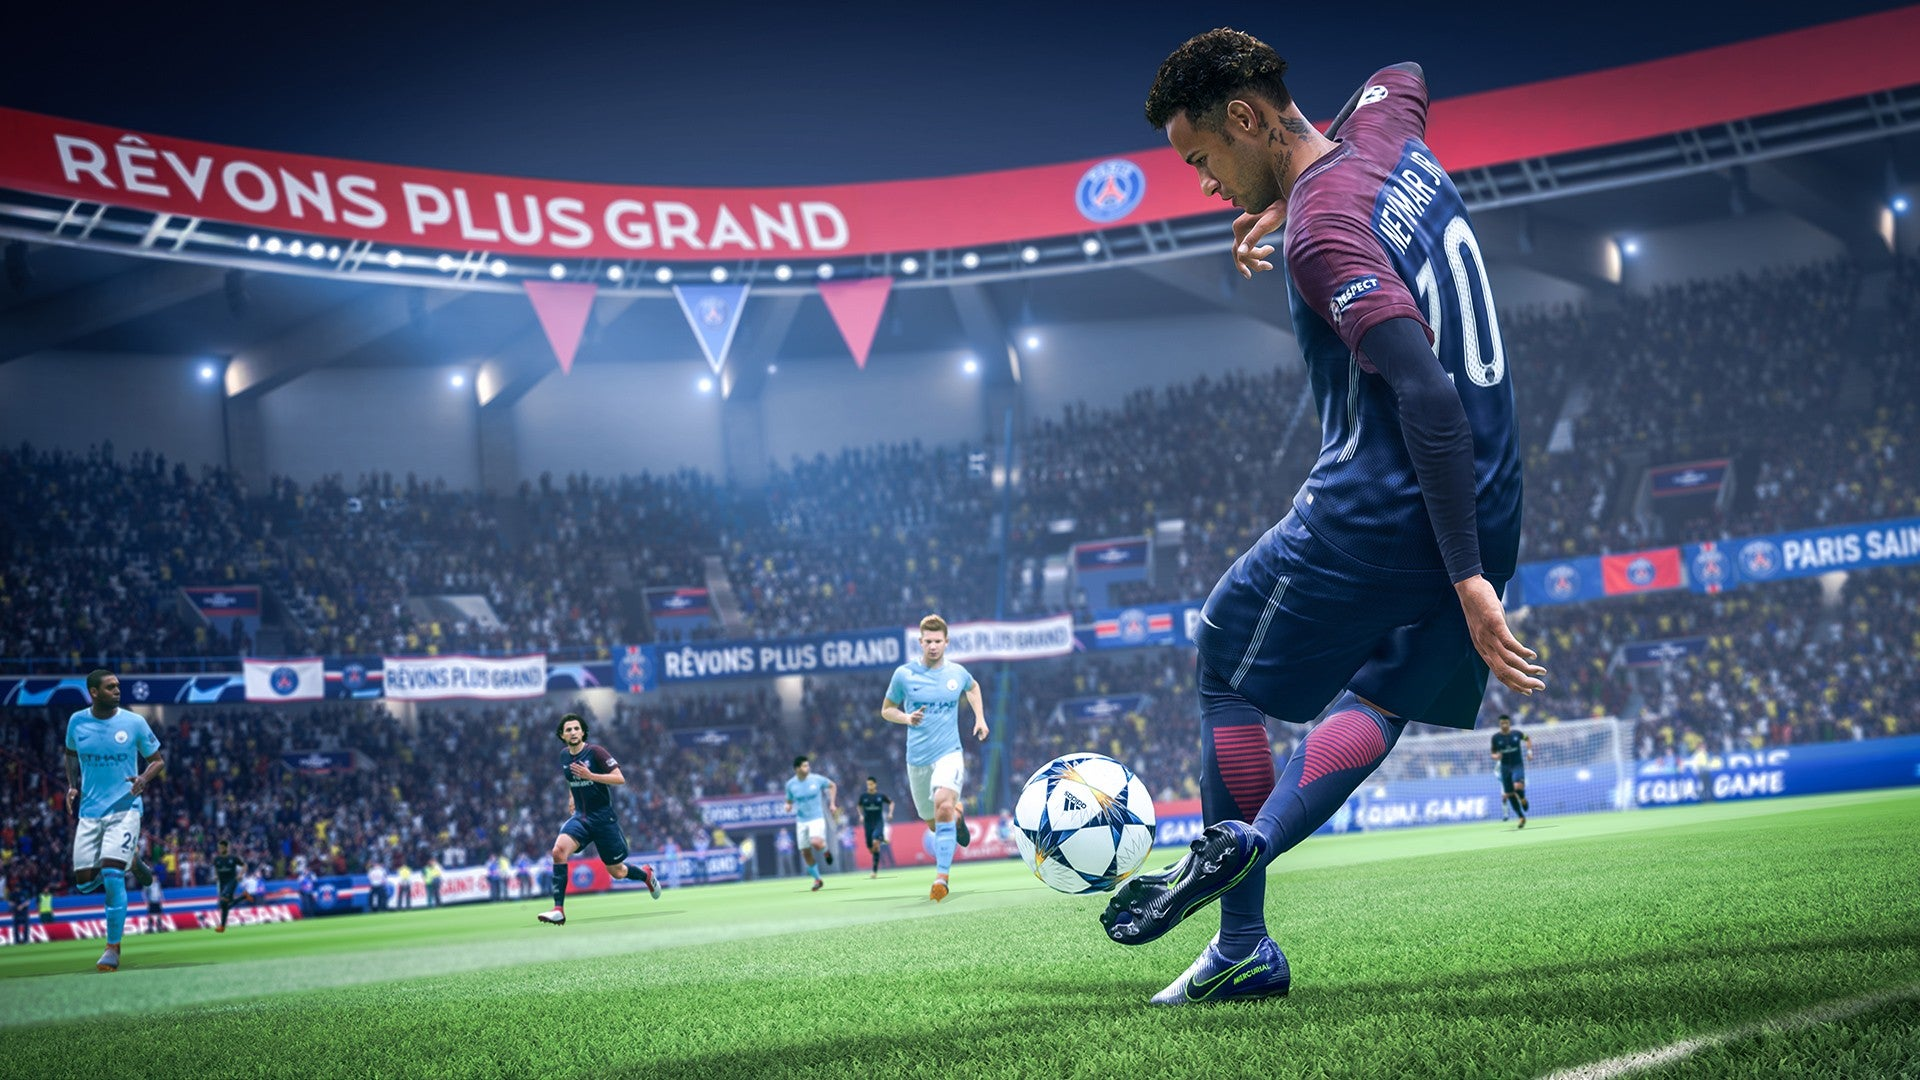 Fifa 19 Download The Playable Demo Right Now On Ps4 Xbox